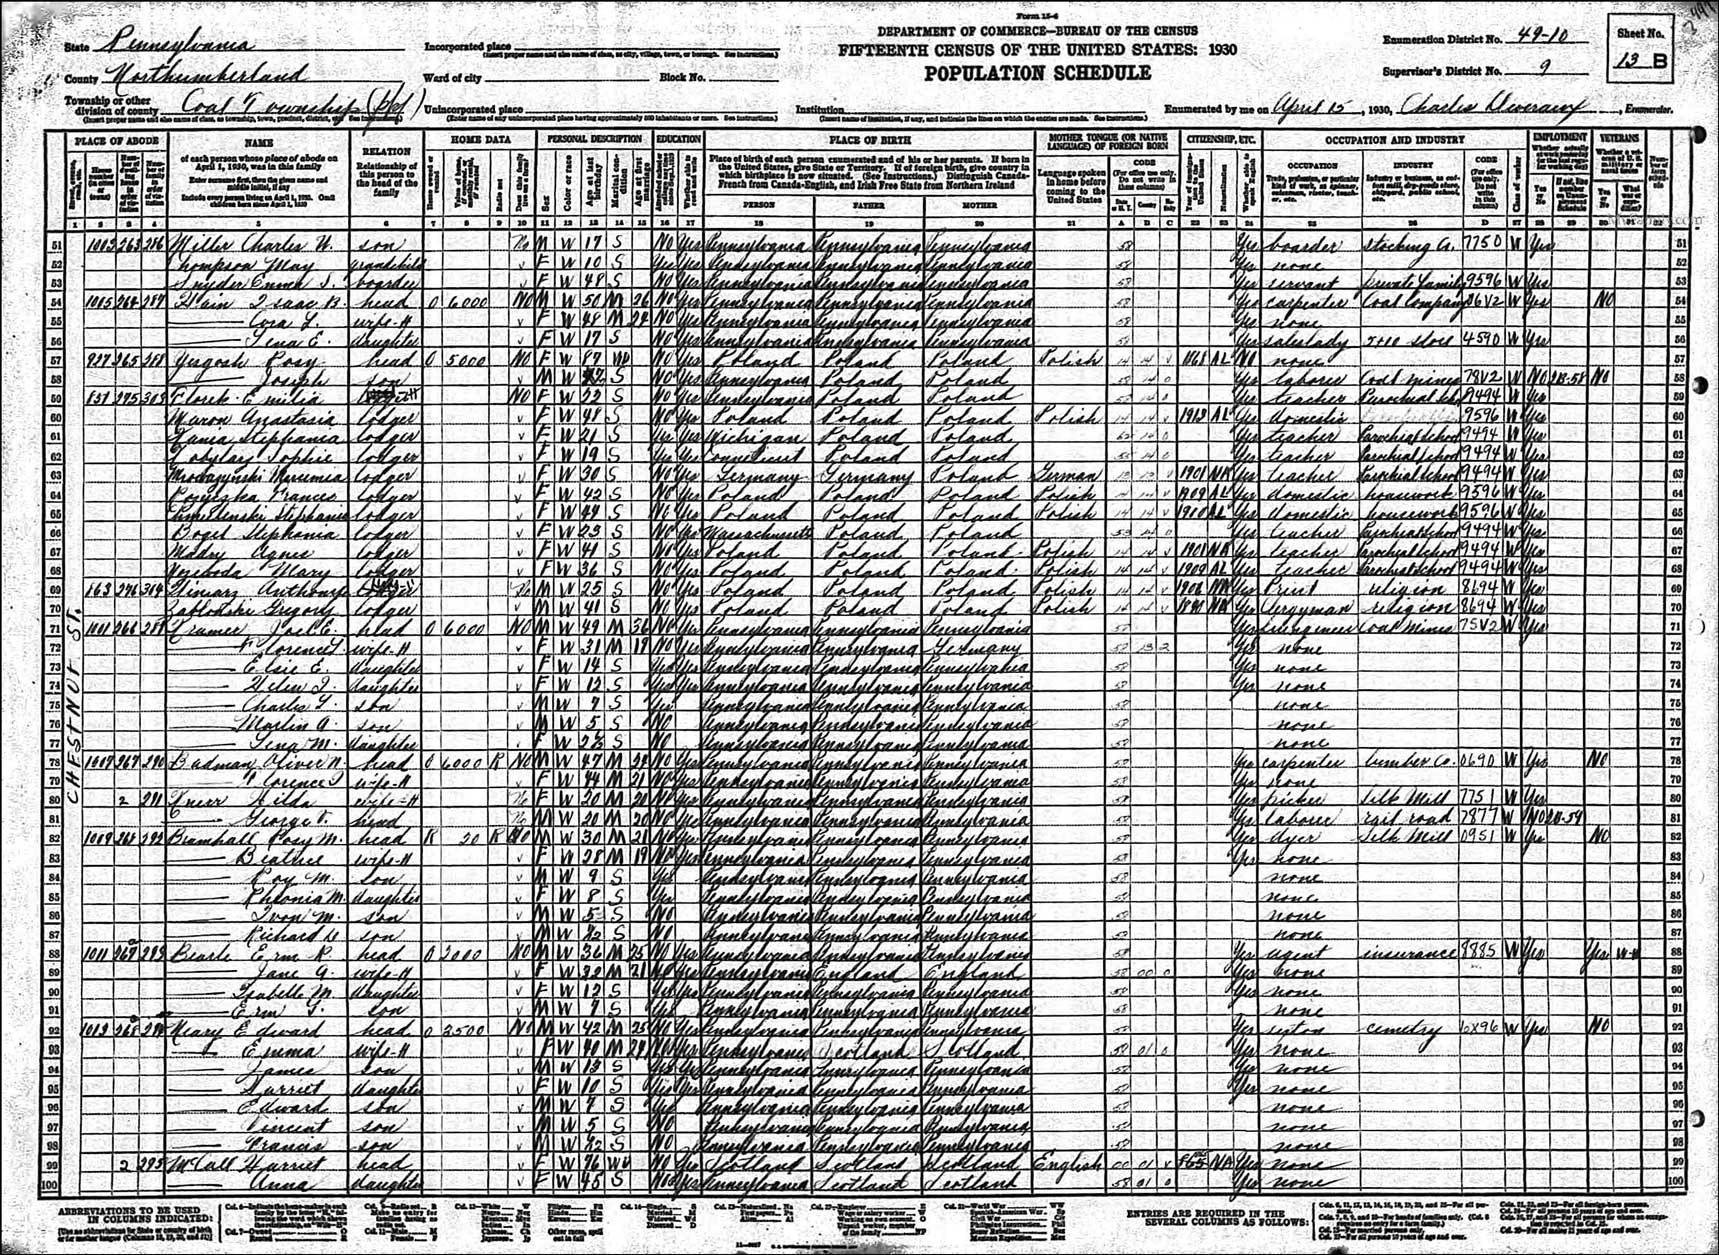 1930 Census Record for Stephania Chmielewski